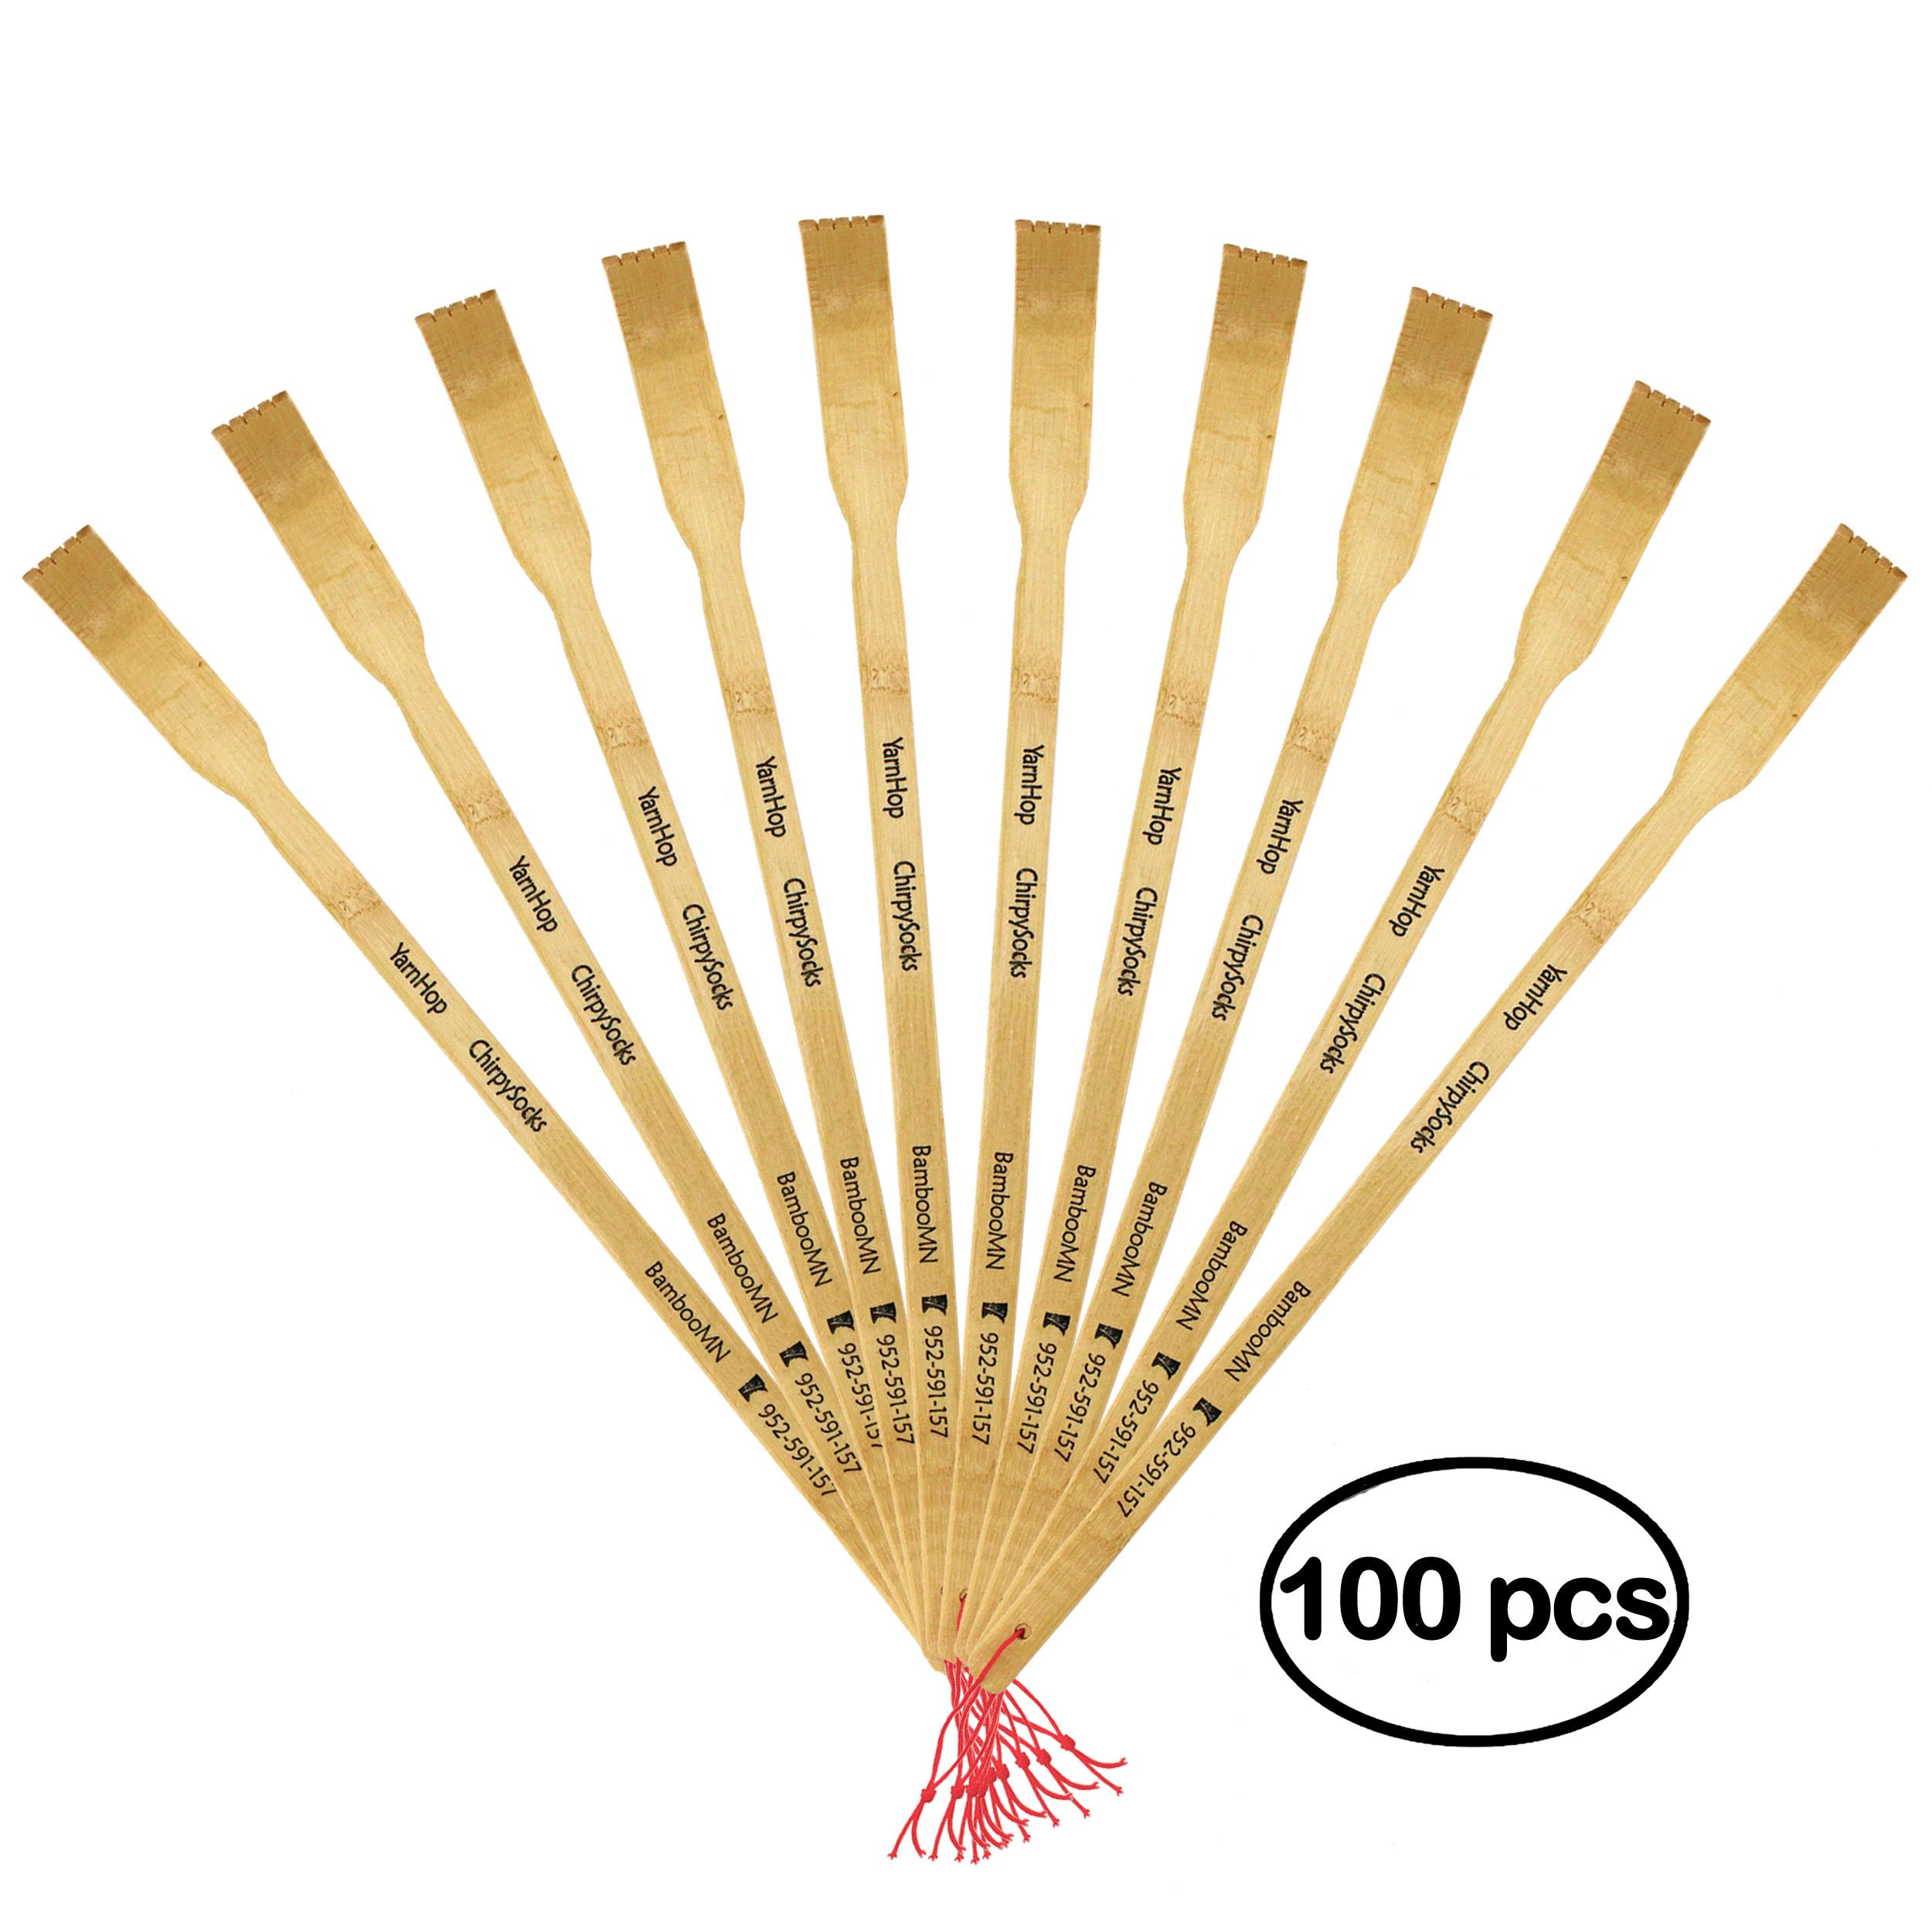 BambooMN 100 Pieces 16.5'' BambooMN Logo Thin Travel Back Scratcher, Provide Instant Relief from Itching Spots, Good Practical and Novel Gifts for Friends and Family by BambooMN